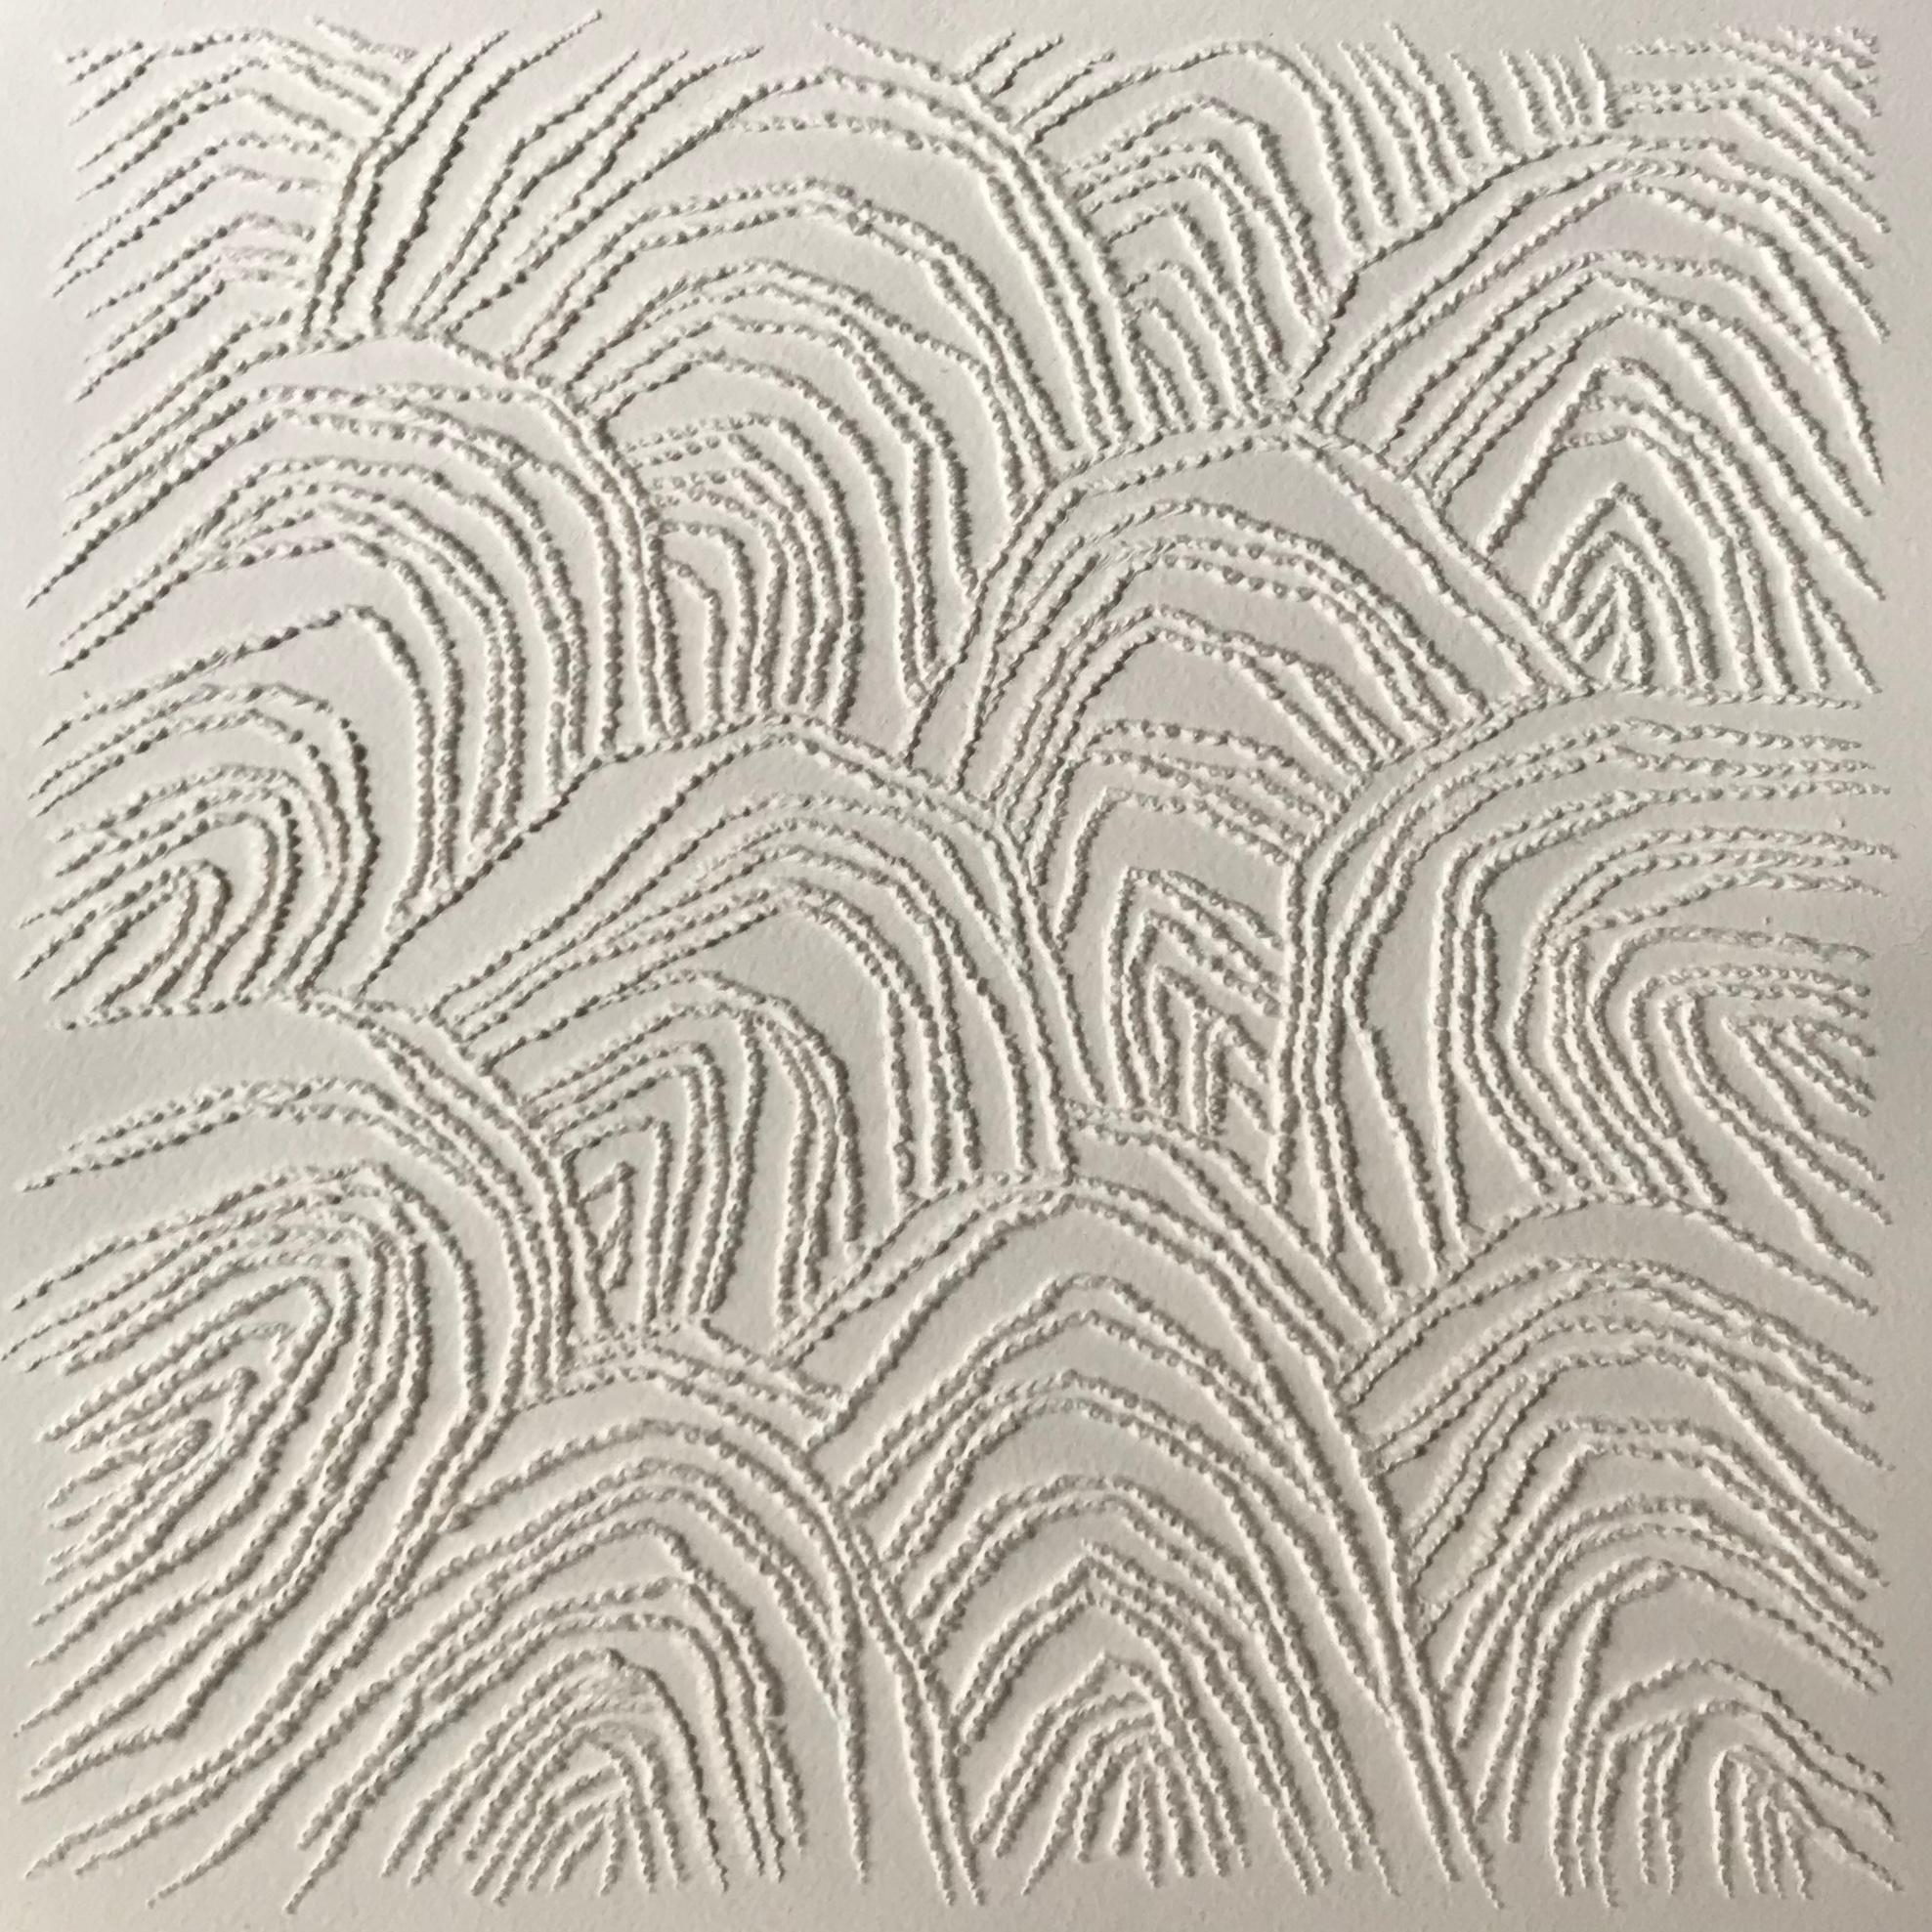 Beige 1 - intricate 3D abstract landscape seascape drawing on paper